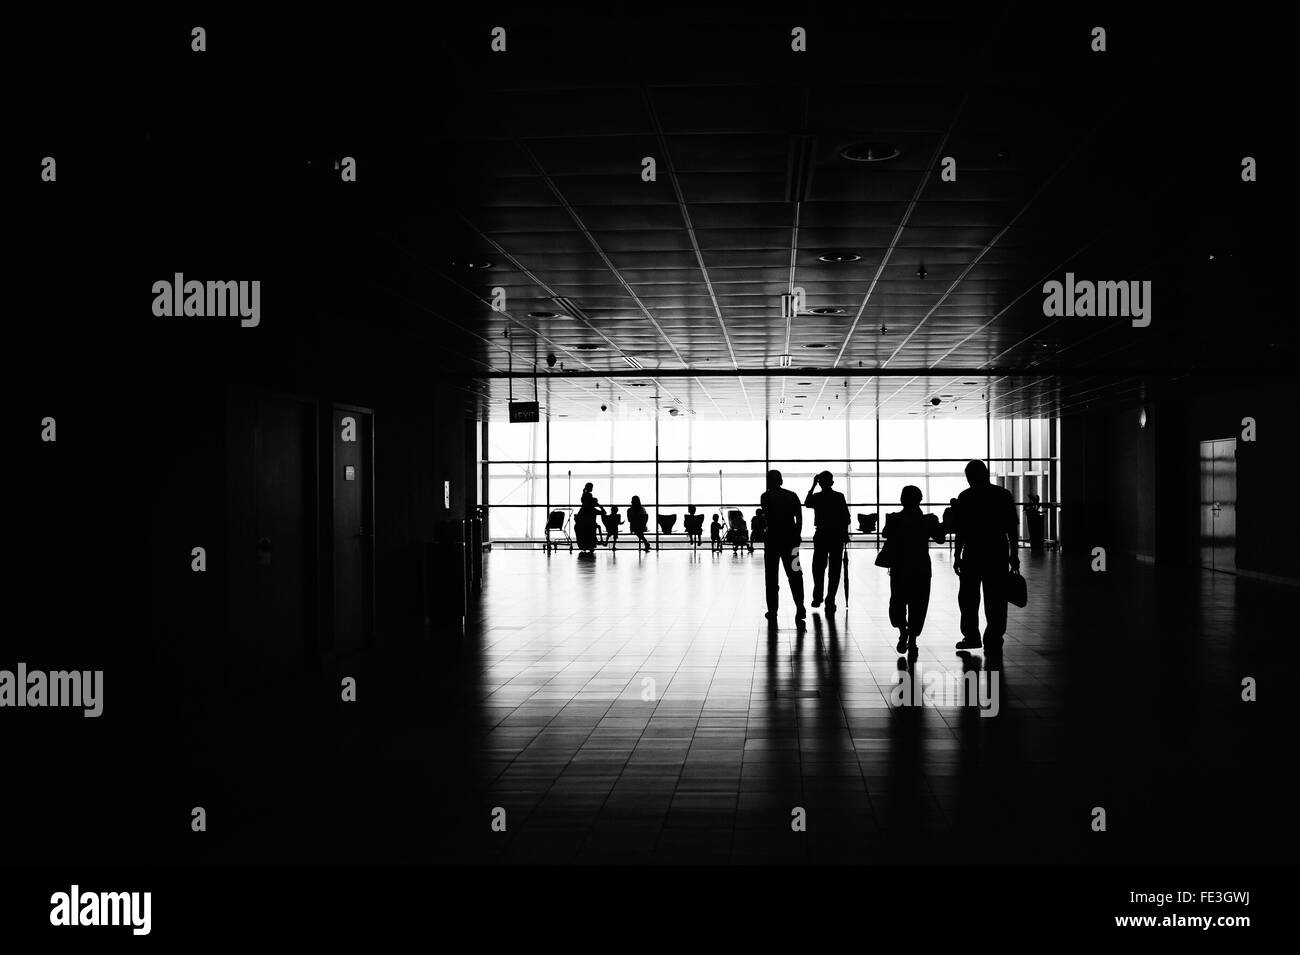 Silhouette People At Airport Terminal - Stock Image